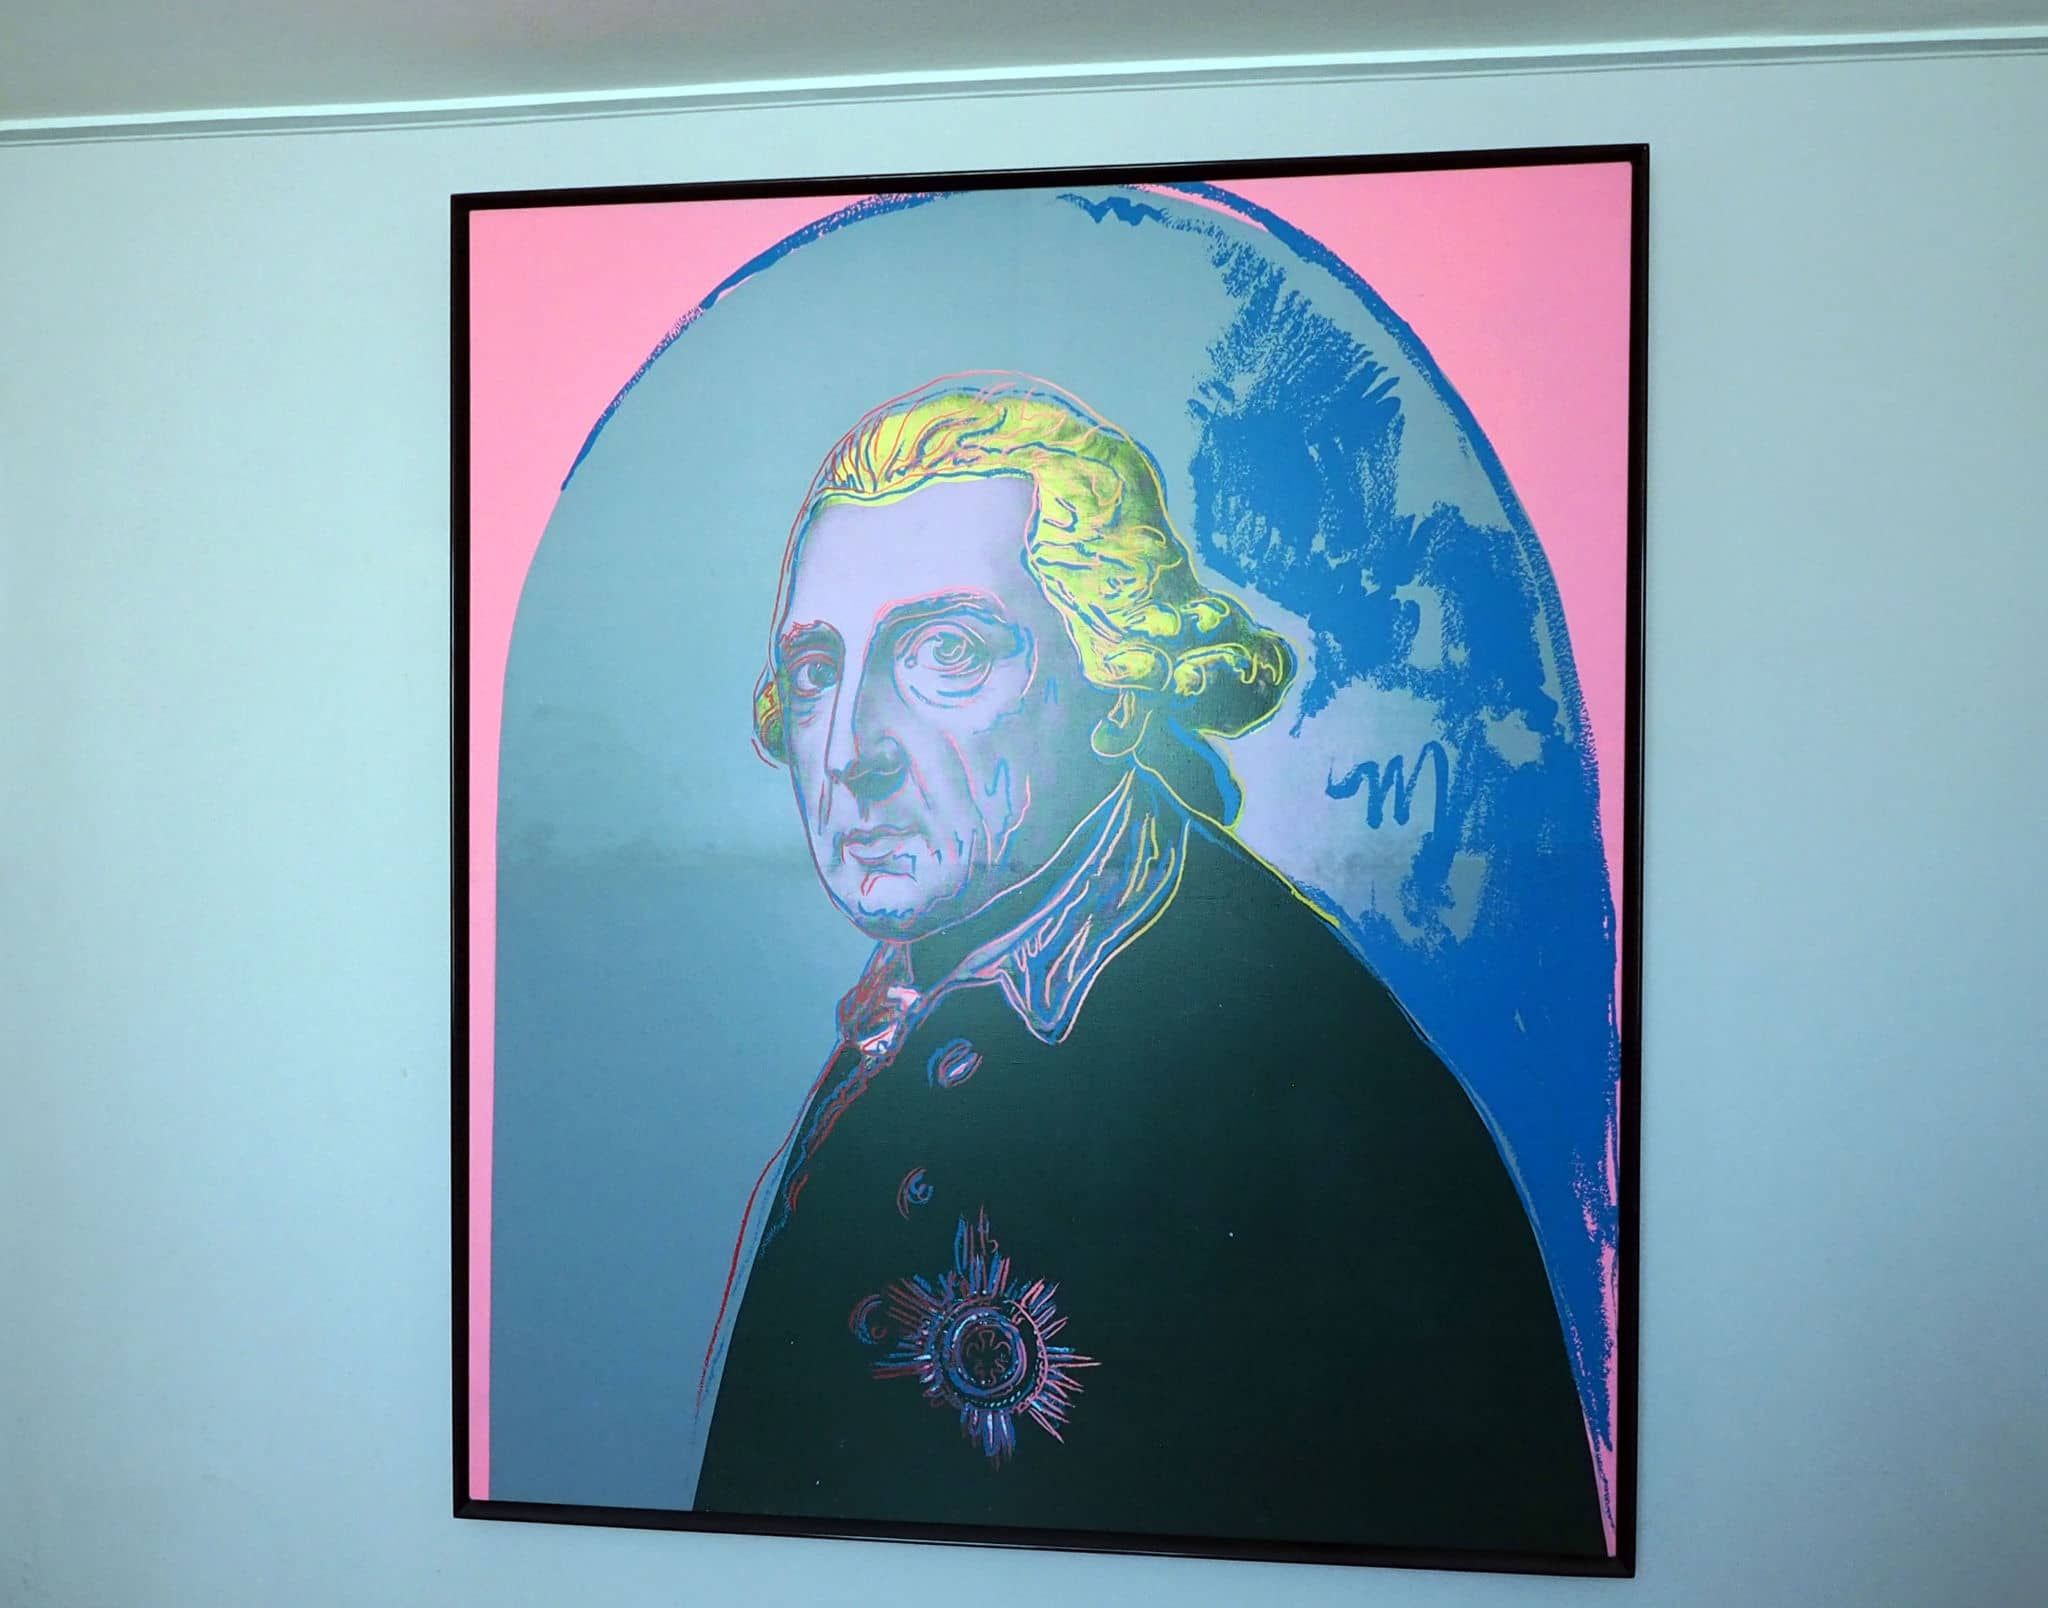 frederick the great, potsdam